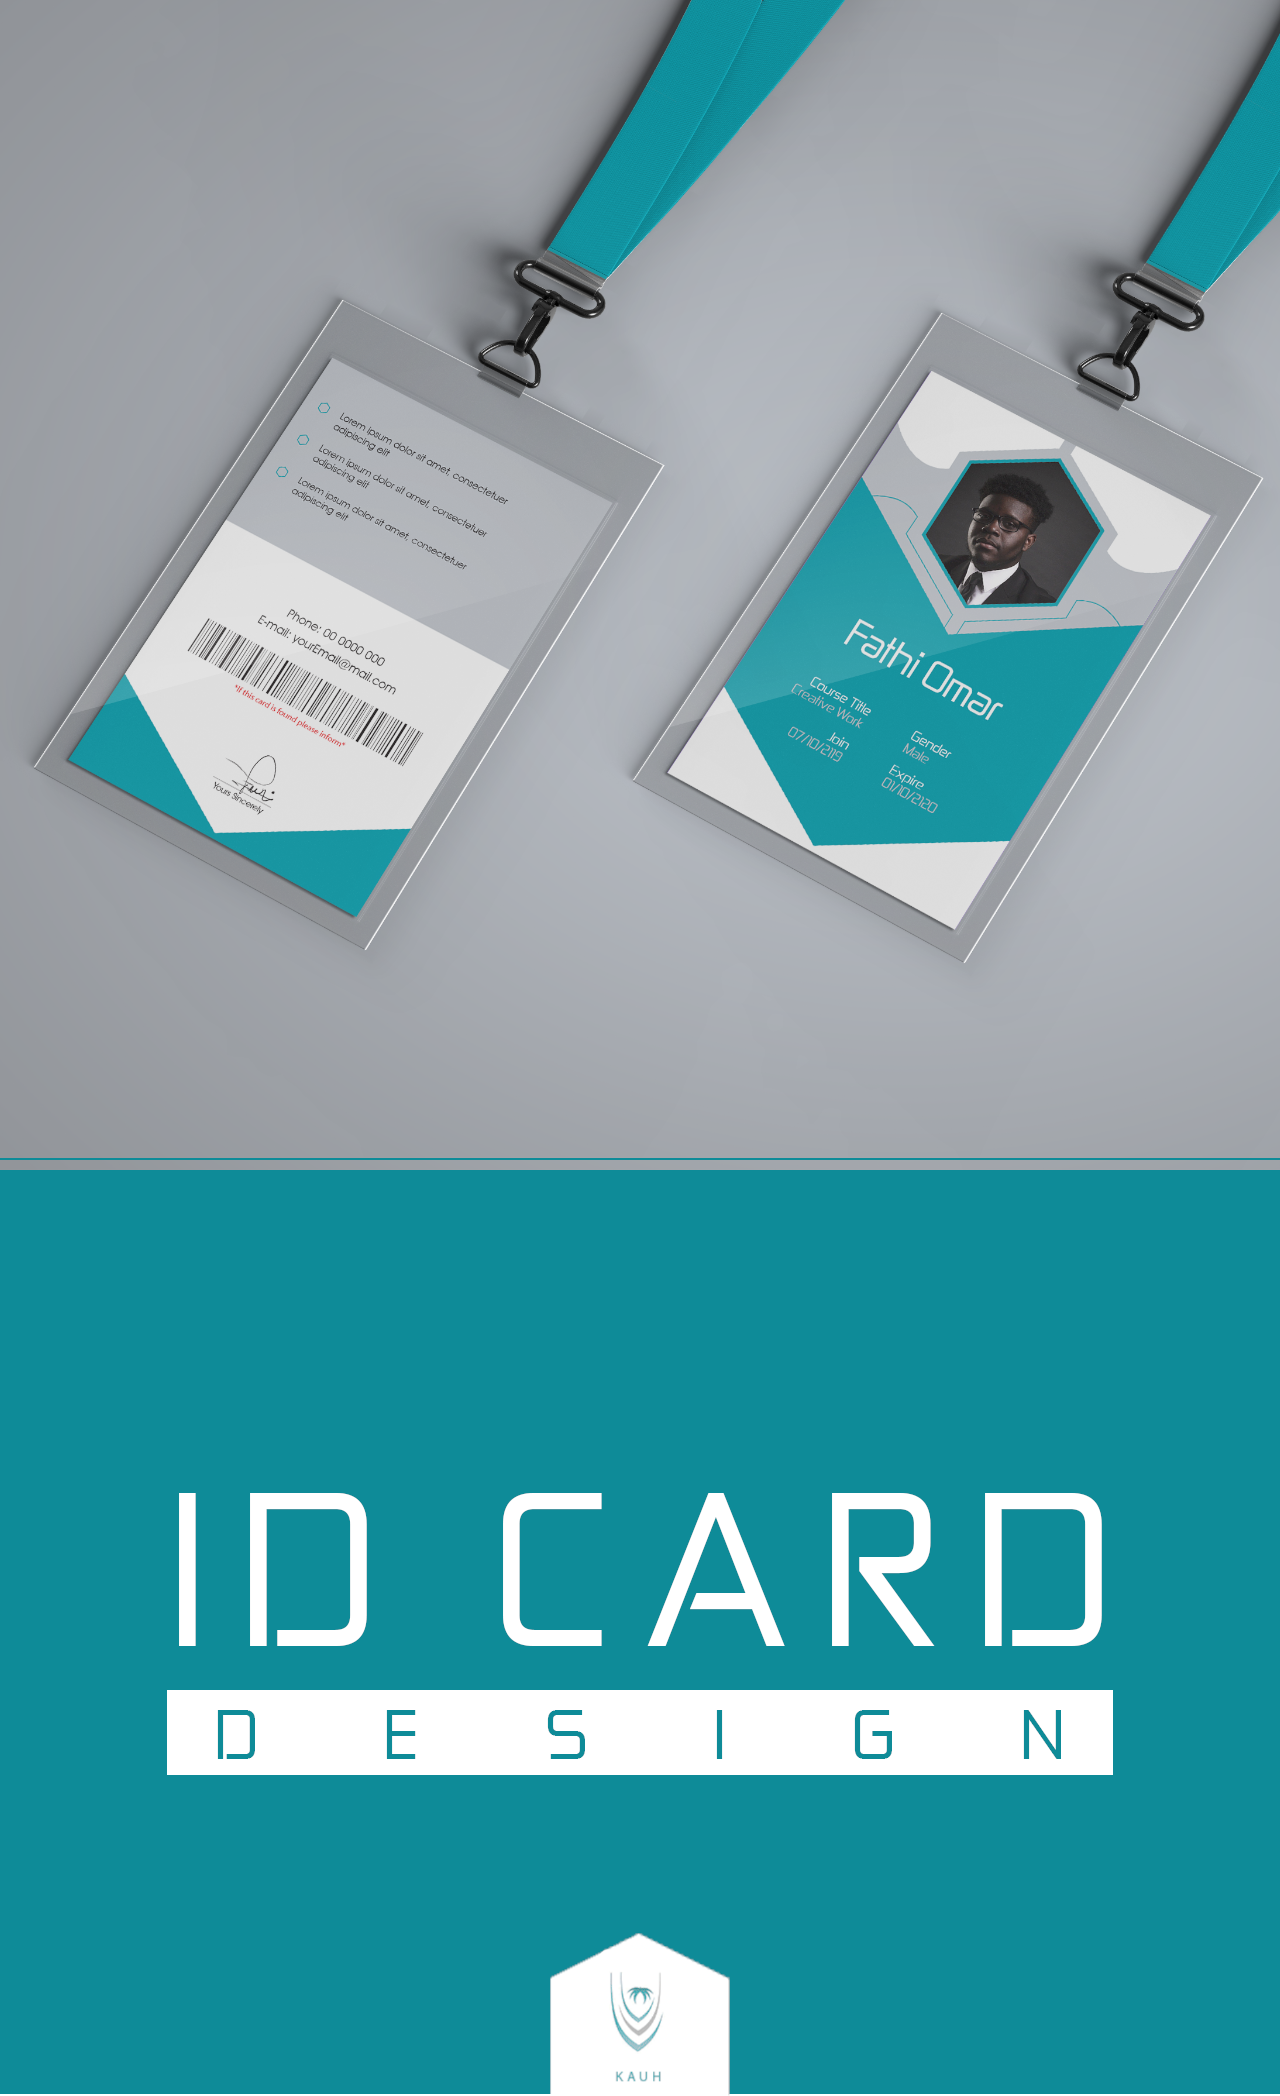 ID Card design template id-card id card photoshop illustrator adobe psd red blue grey employee employer company student school collage university business-card business man woman men women corporate corporation elegant course education work job graphicDesign for King Abdullah Hospital University